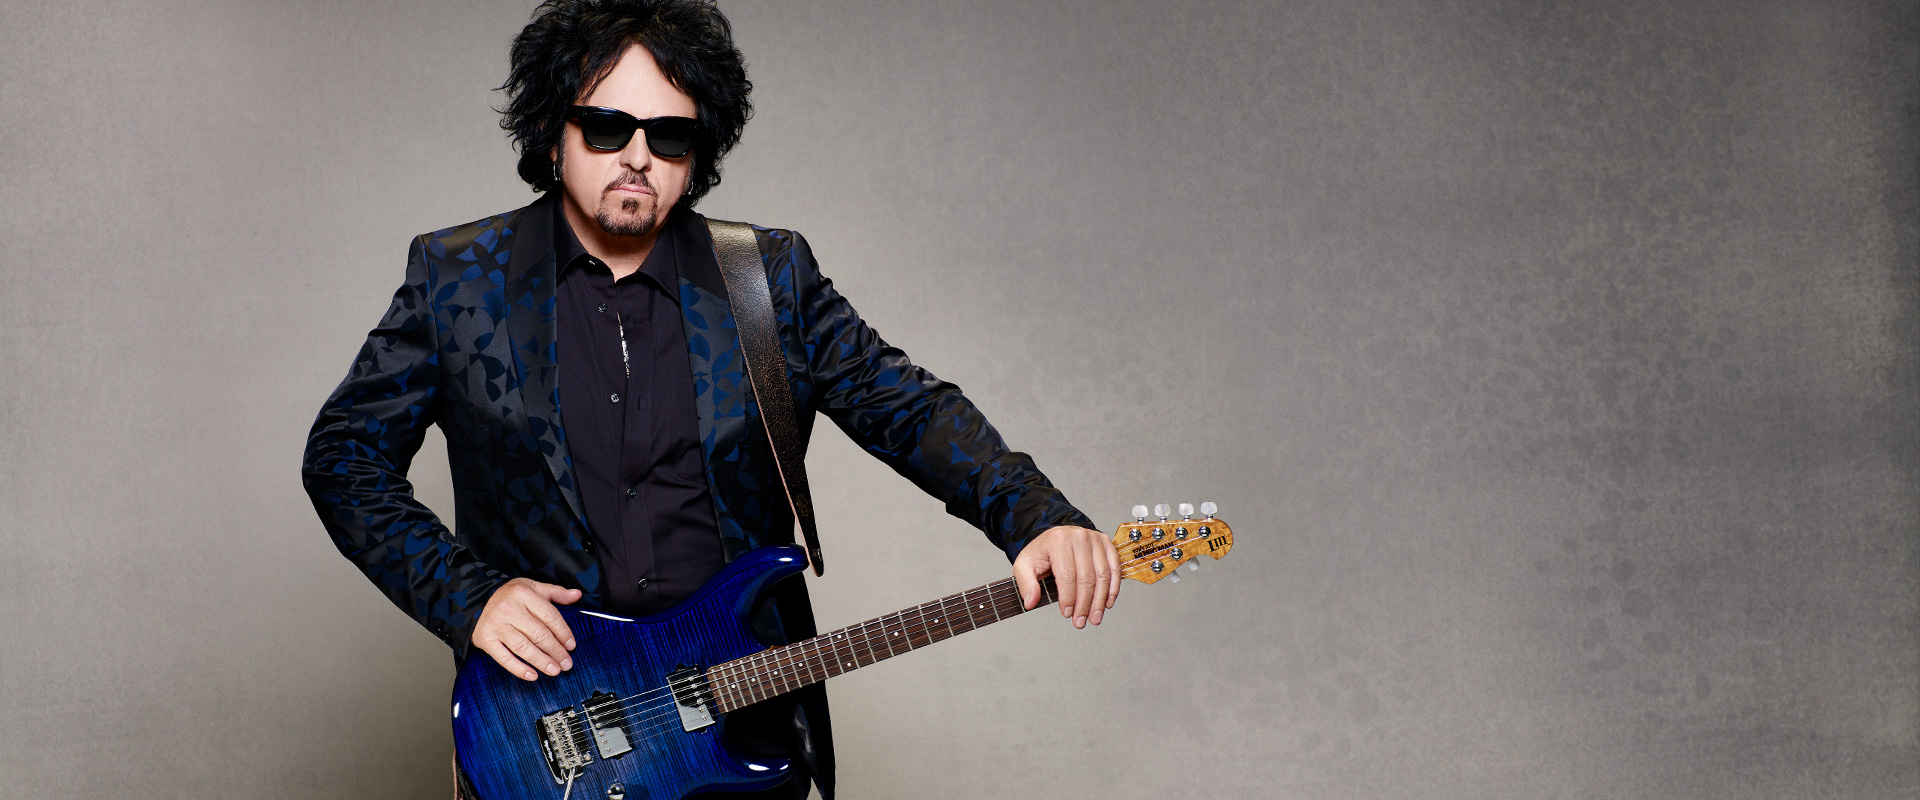 Steve Lukather plays DiMarzio